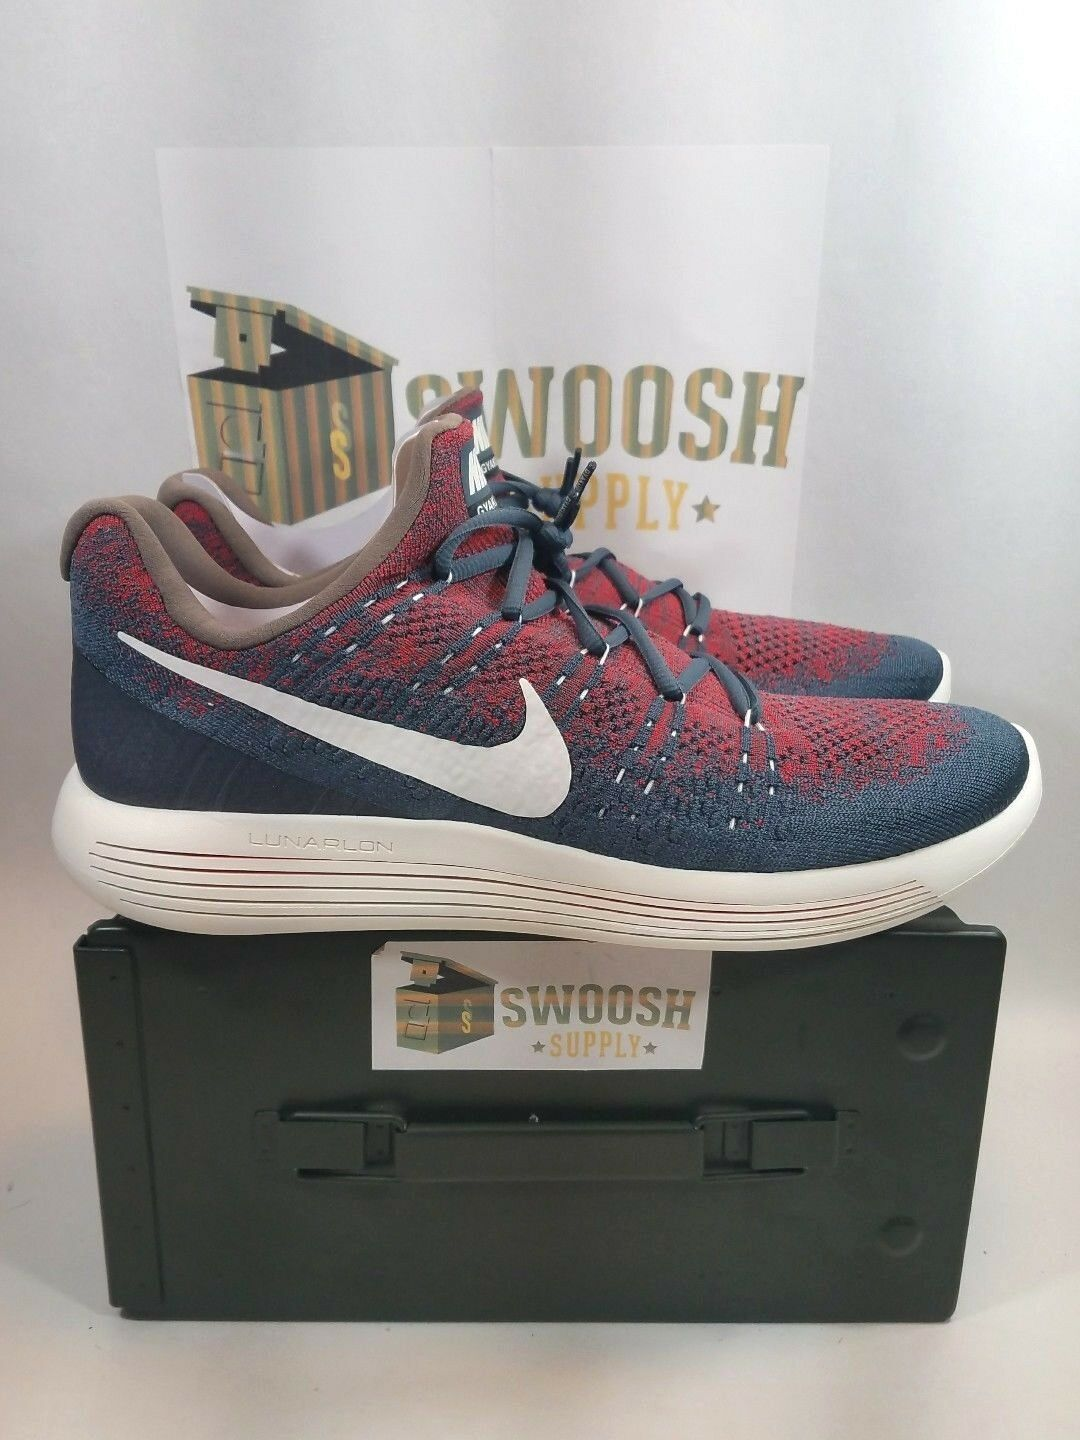 Nike LunarEpic Low Flyknit 2 Gyakusou Running 880283-400 Blue Red Mens size 14 Seasonal clearance sale